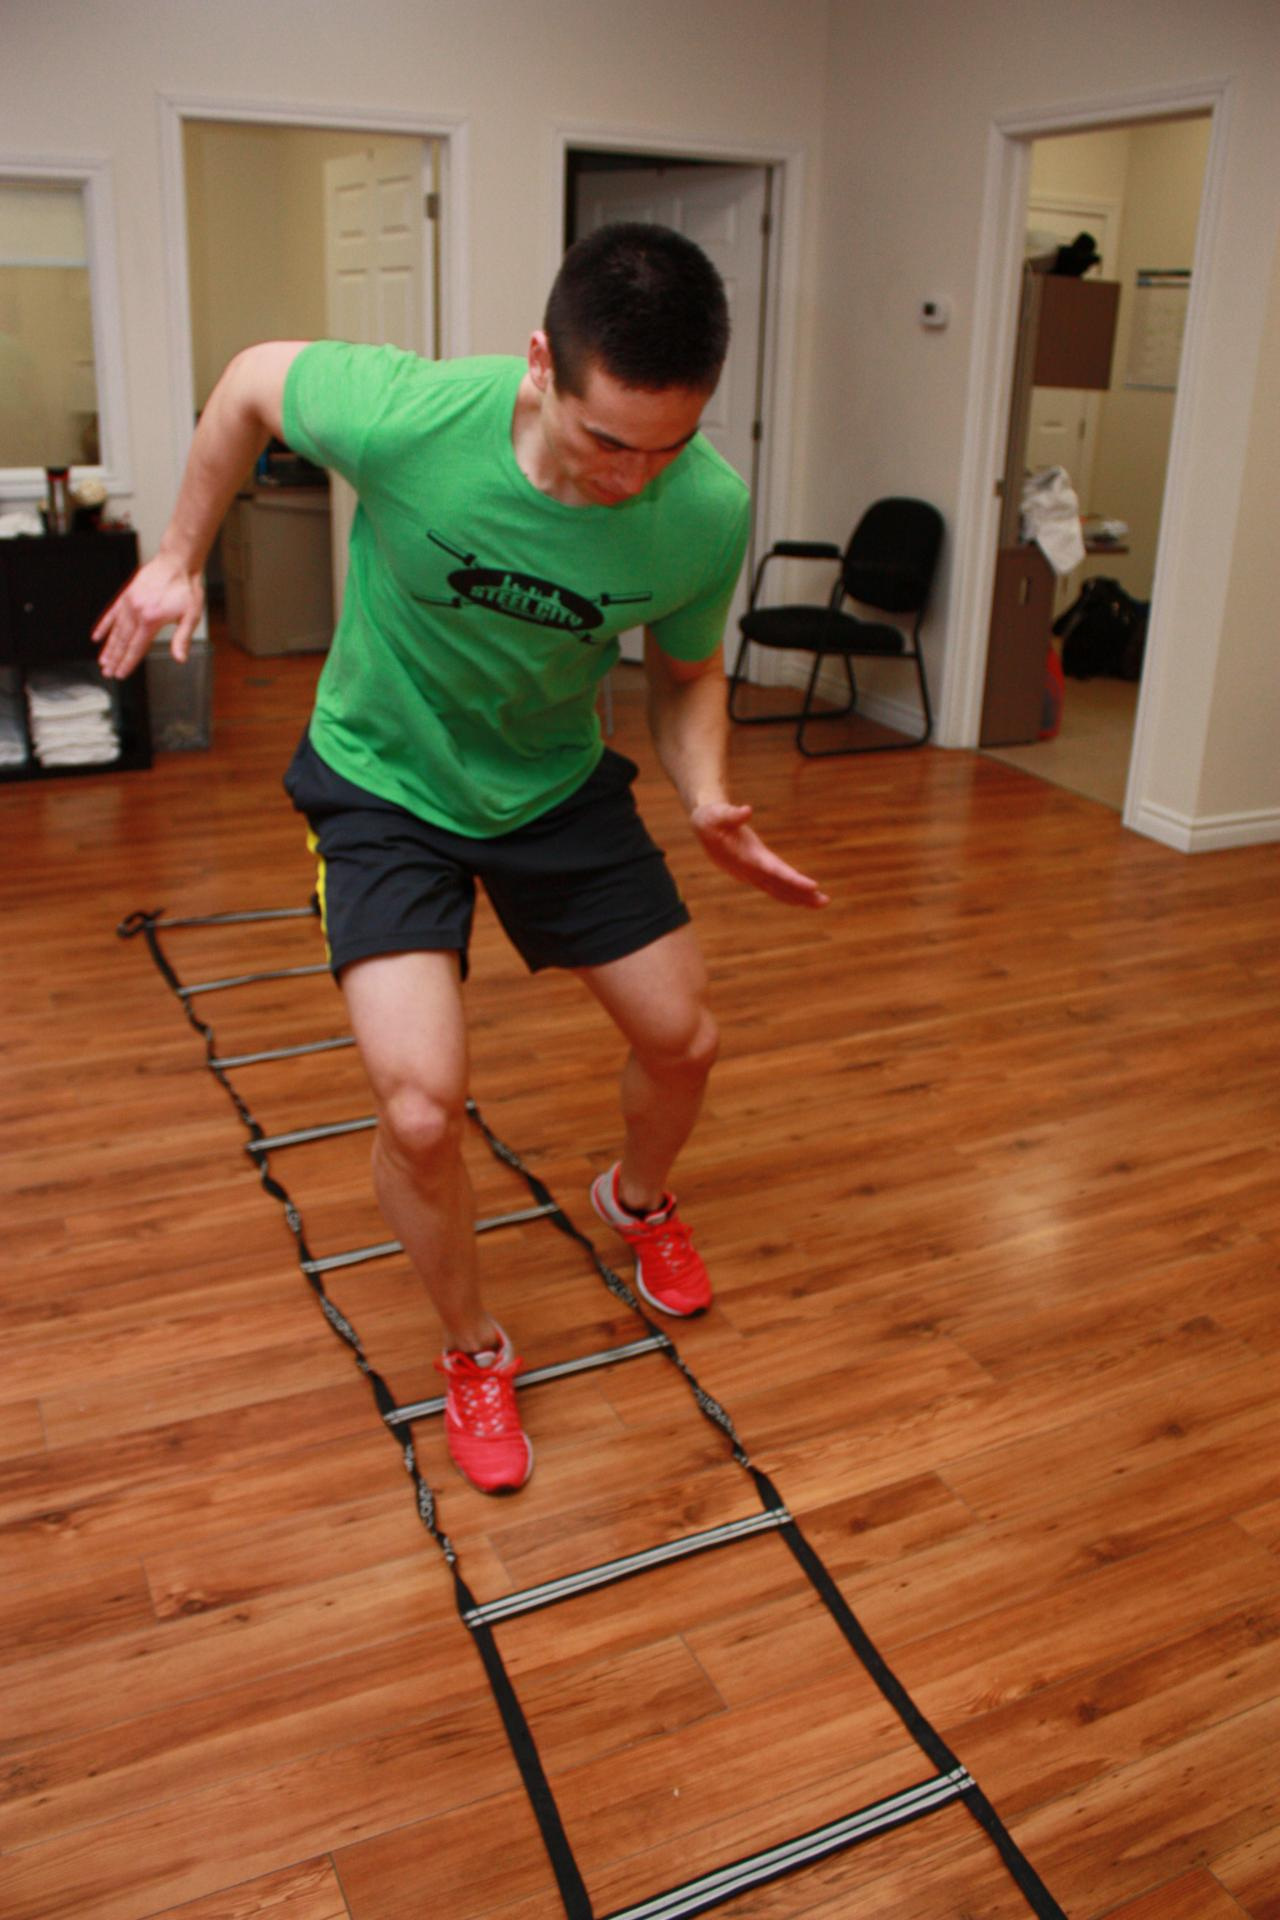 patient running ladder drill for strength and conditioning